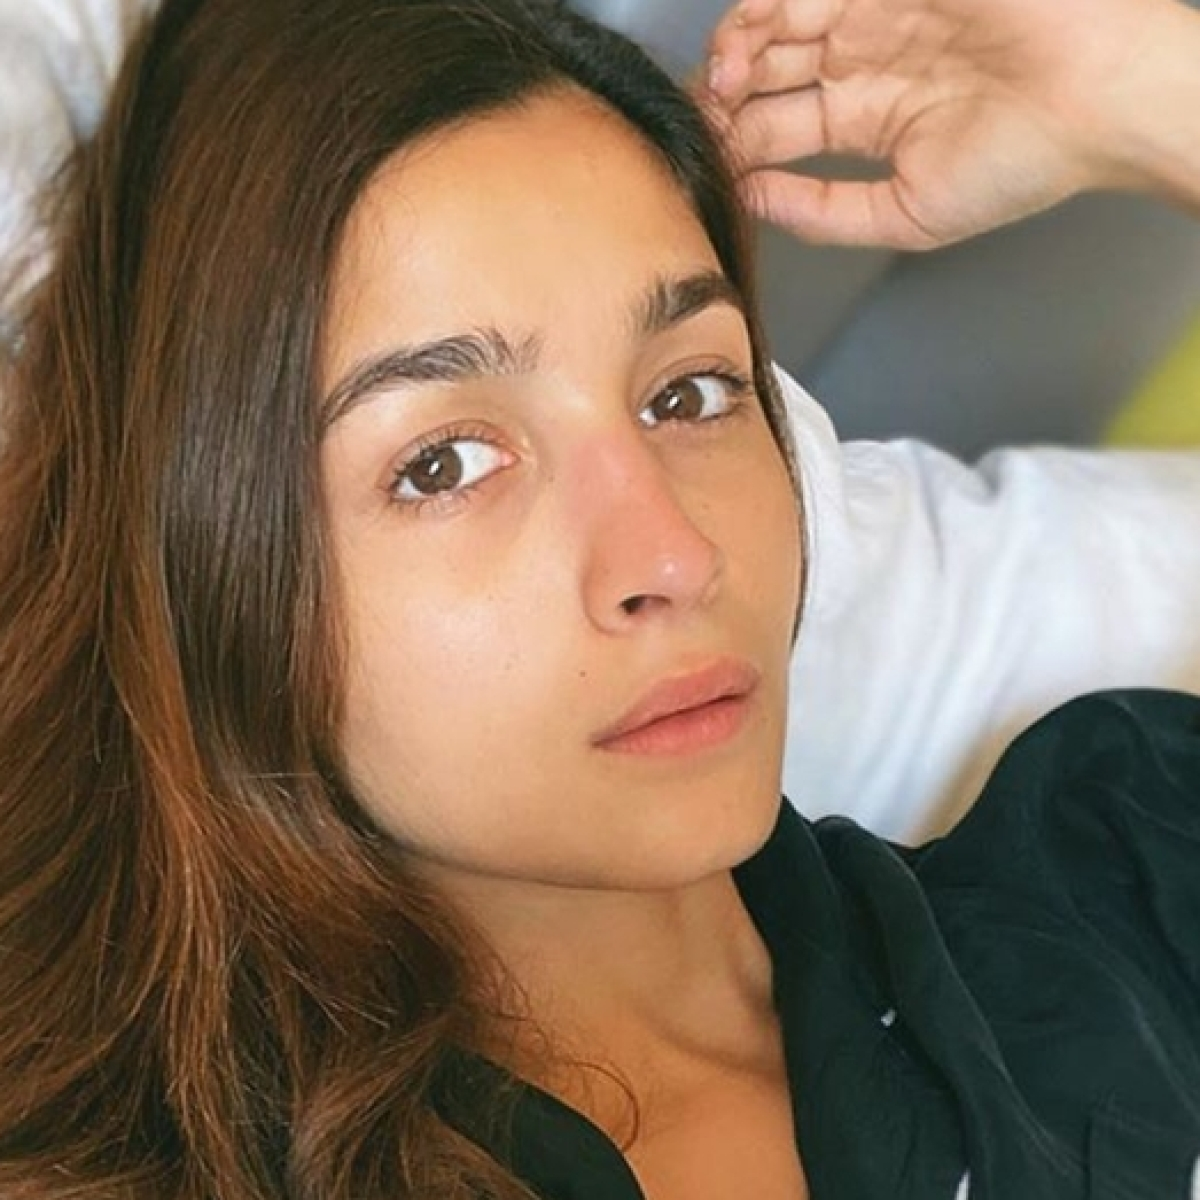 Alia Bhatt's cat Eddie takes over her Instagram after she's hurt, gives health update